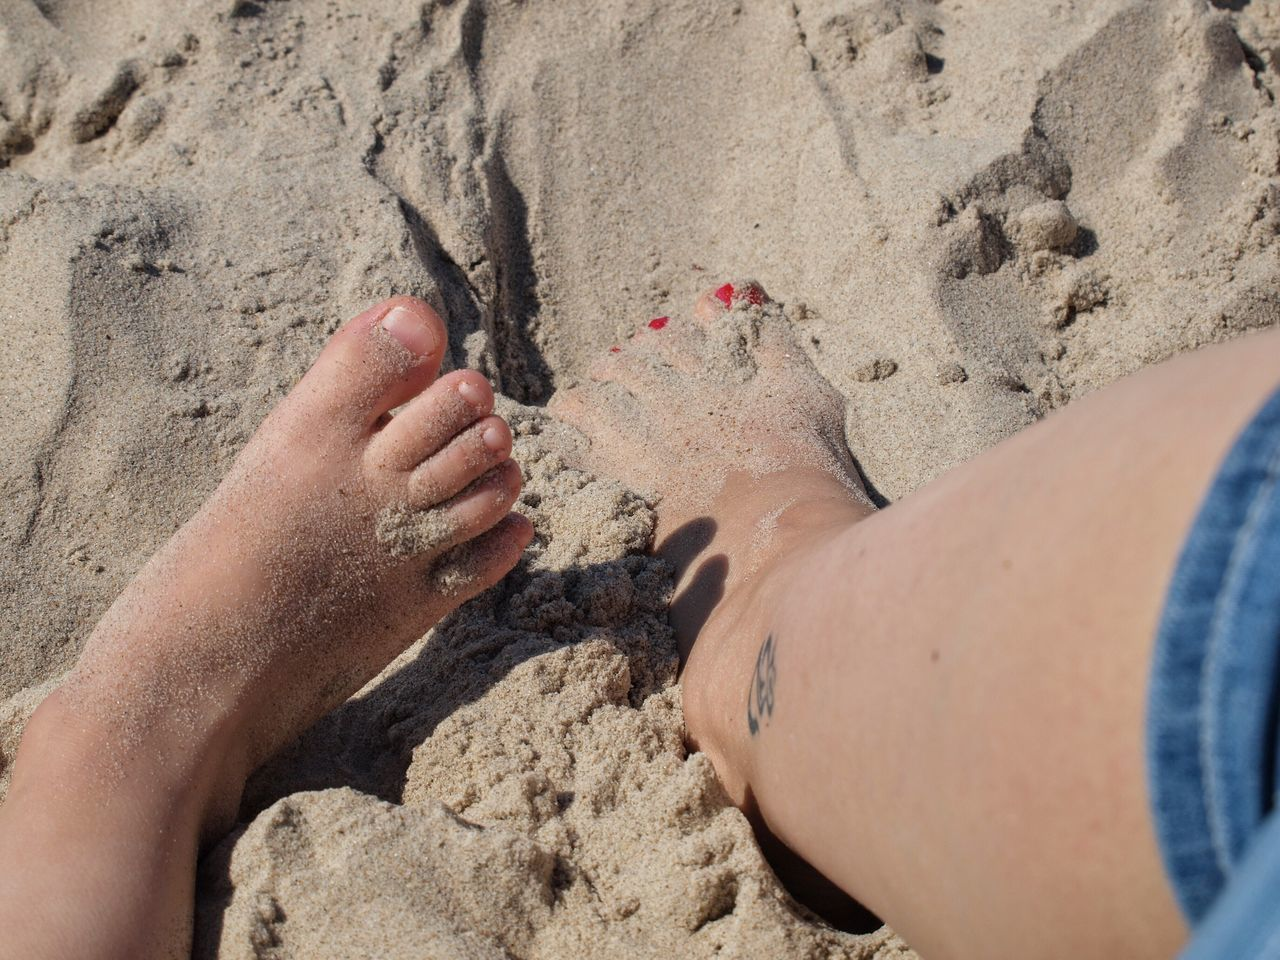 Beach Sand Real People Human Body Part Human Leg Legs Child Two People Two Legs Legs In Sand Red Nails Red Nail Polish Tattoo Leg Tattoo Togetherness Sunlight Vacations Outdoors Leisure Activity Day Close-up Women Low Section Adult People